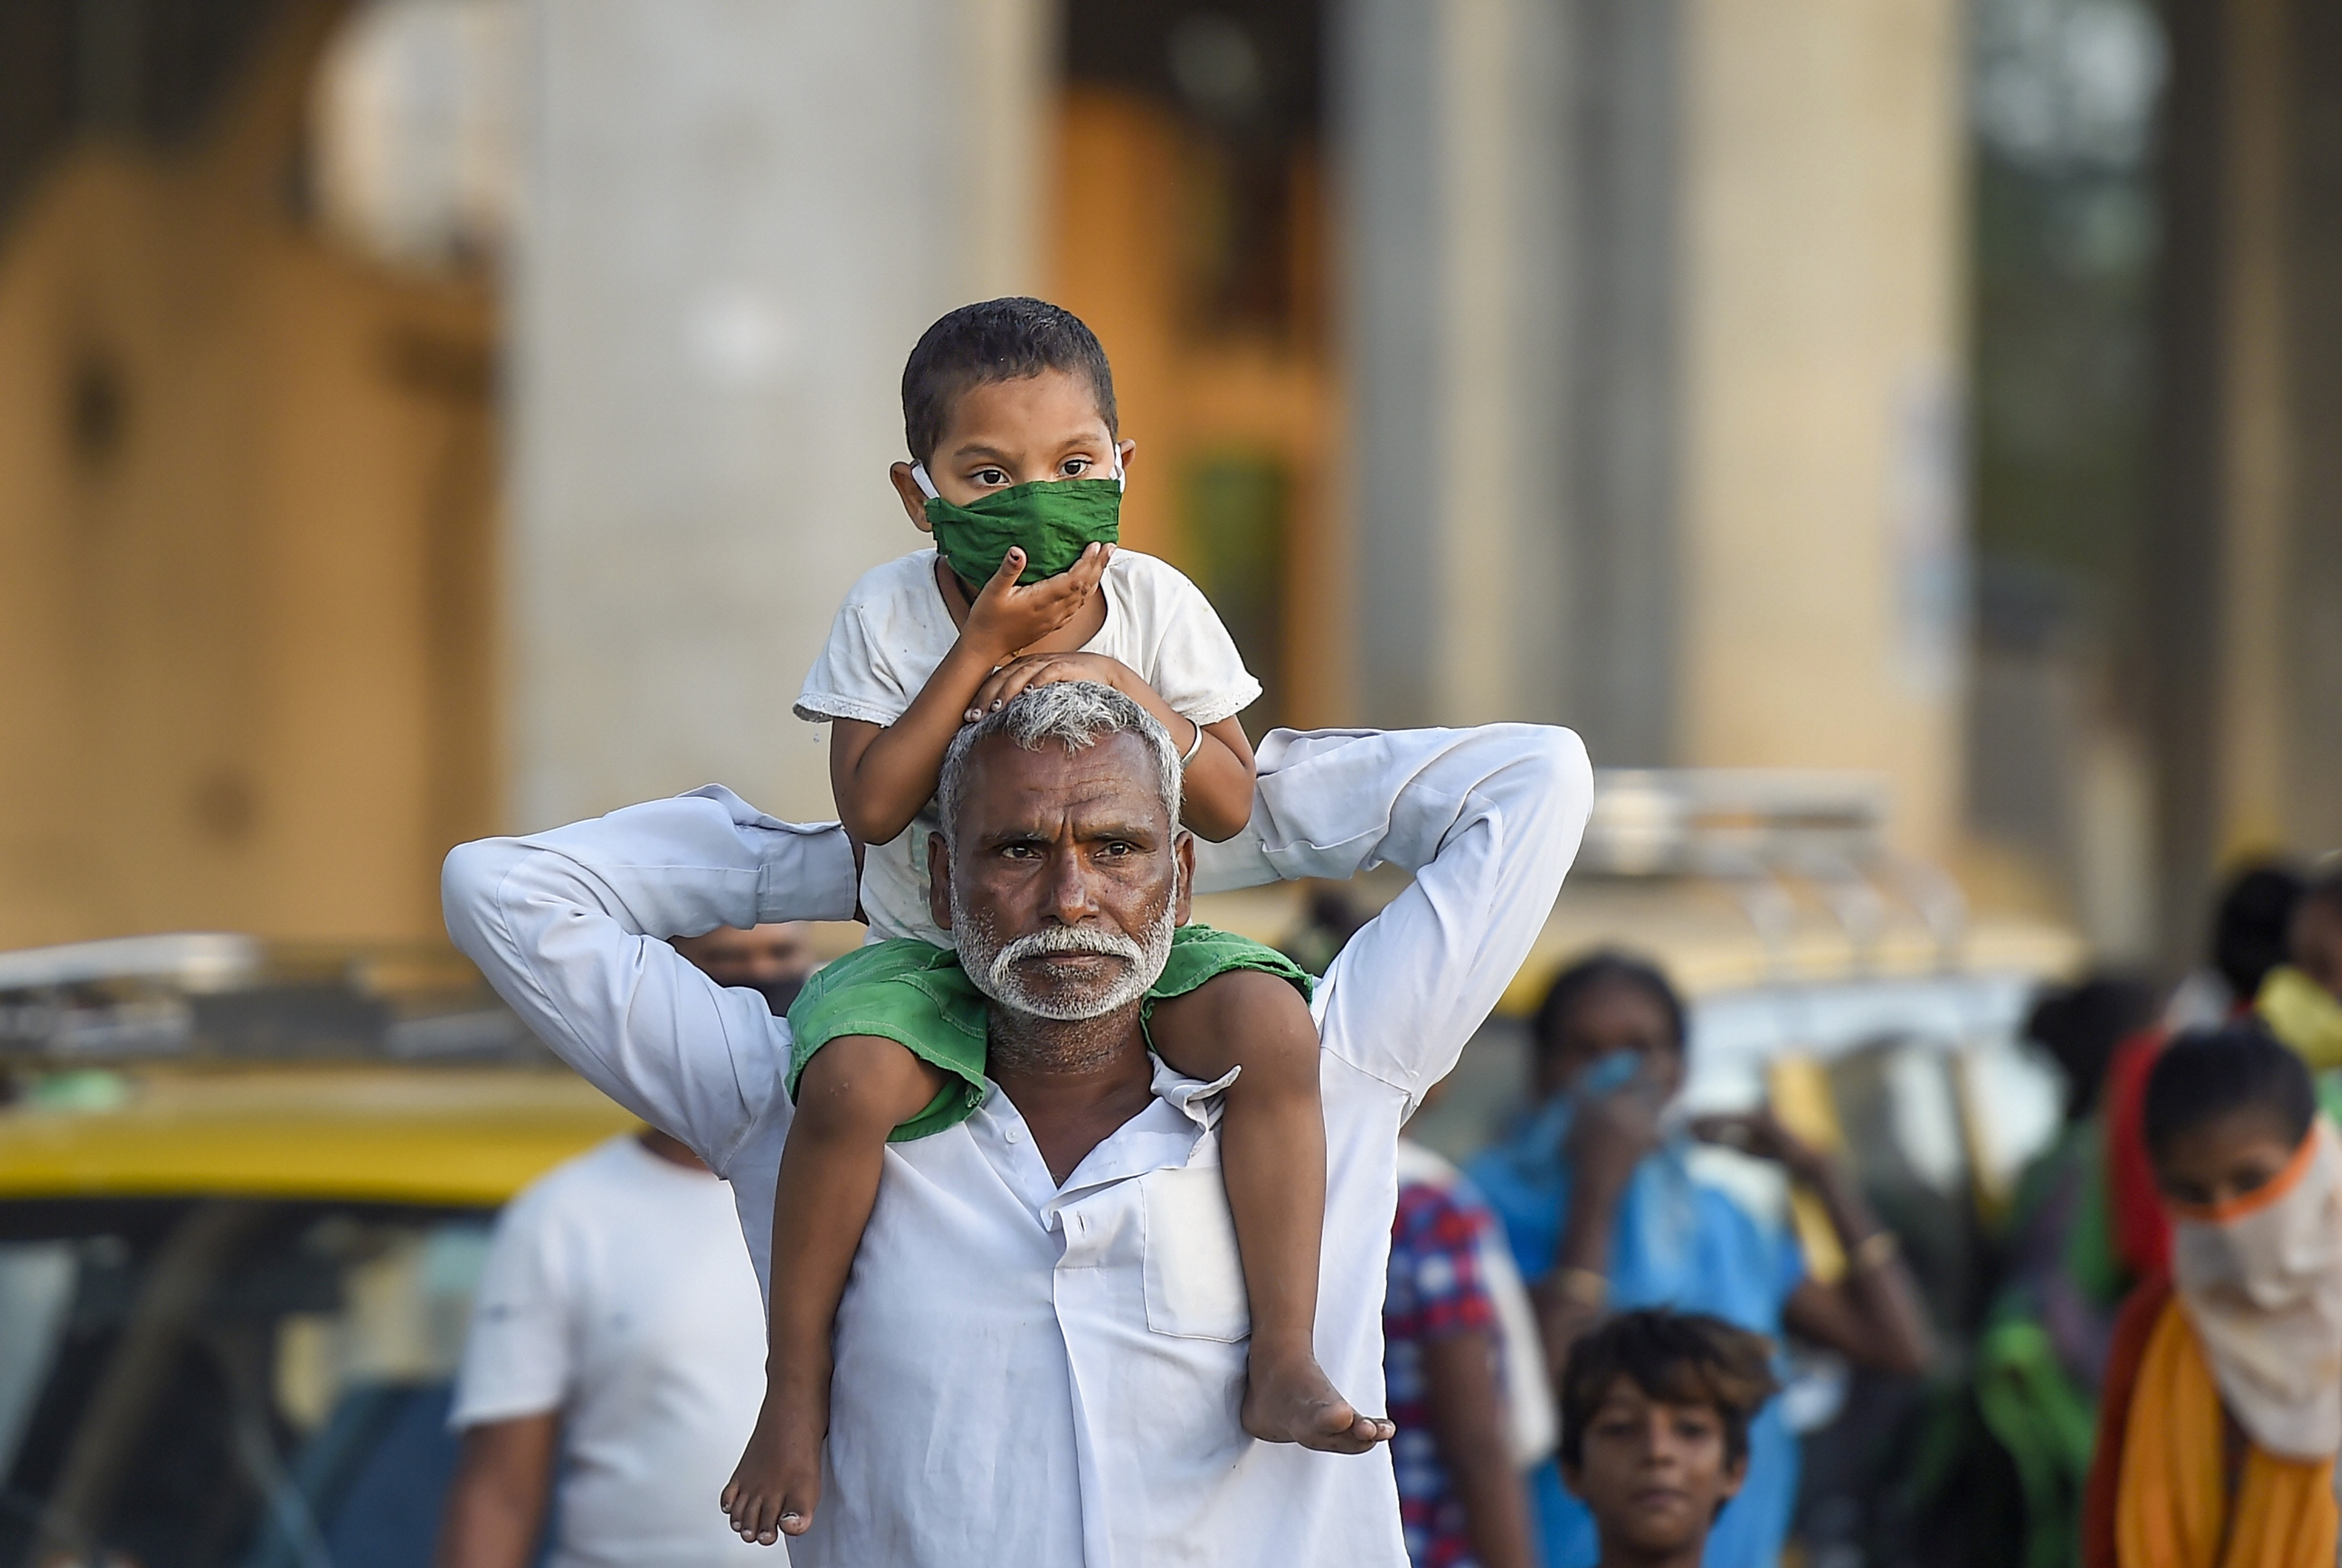 A child wearing a face mask sits on the shoulder of an elderly man during the nationwide lockdown, imposed in the wake of the coronavirus pandemic, at Sion in Mumbai, Wednesday, April 8, 2020.